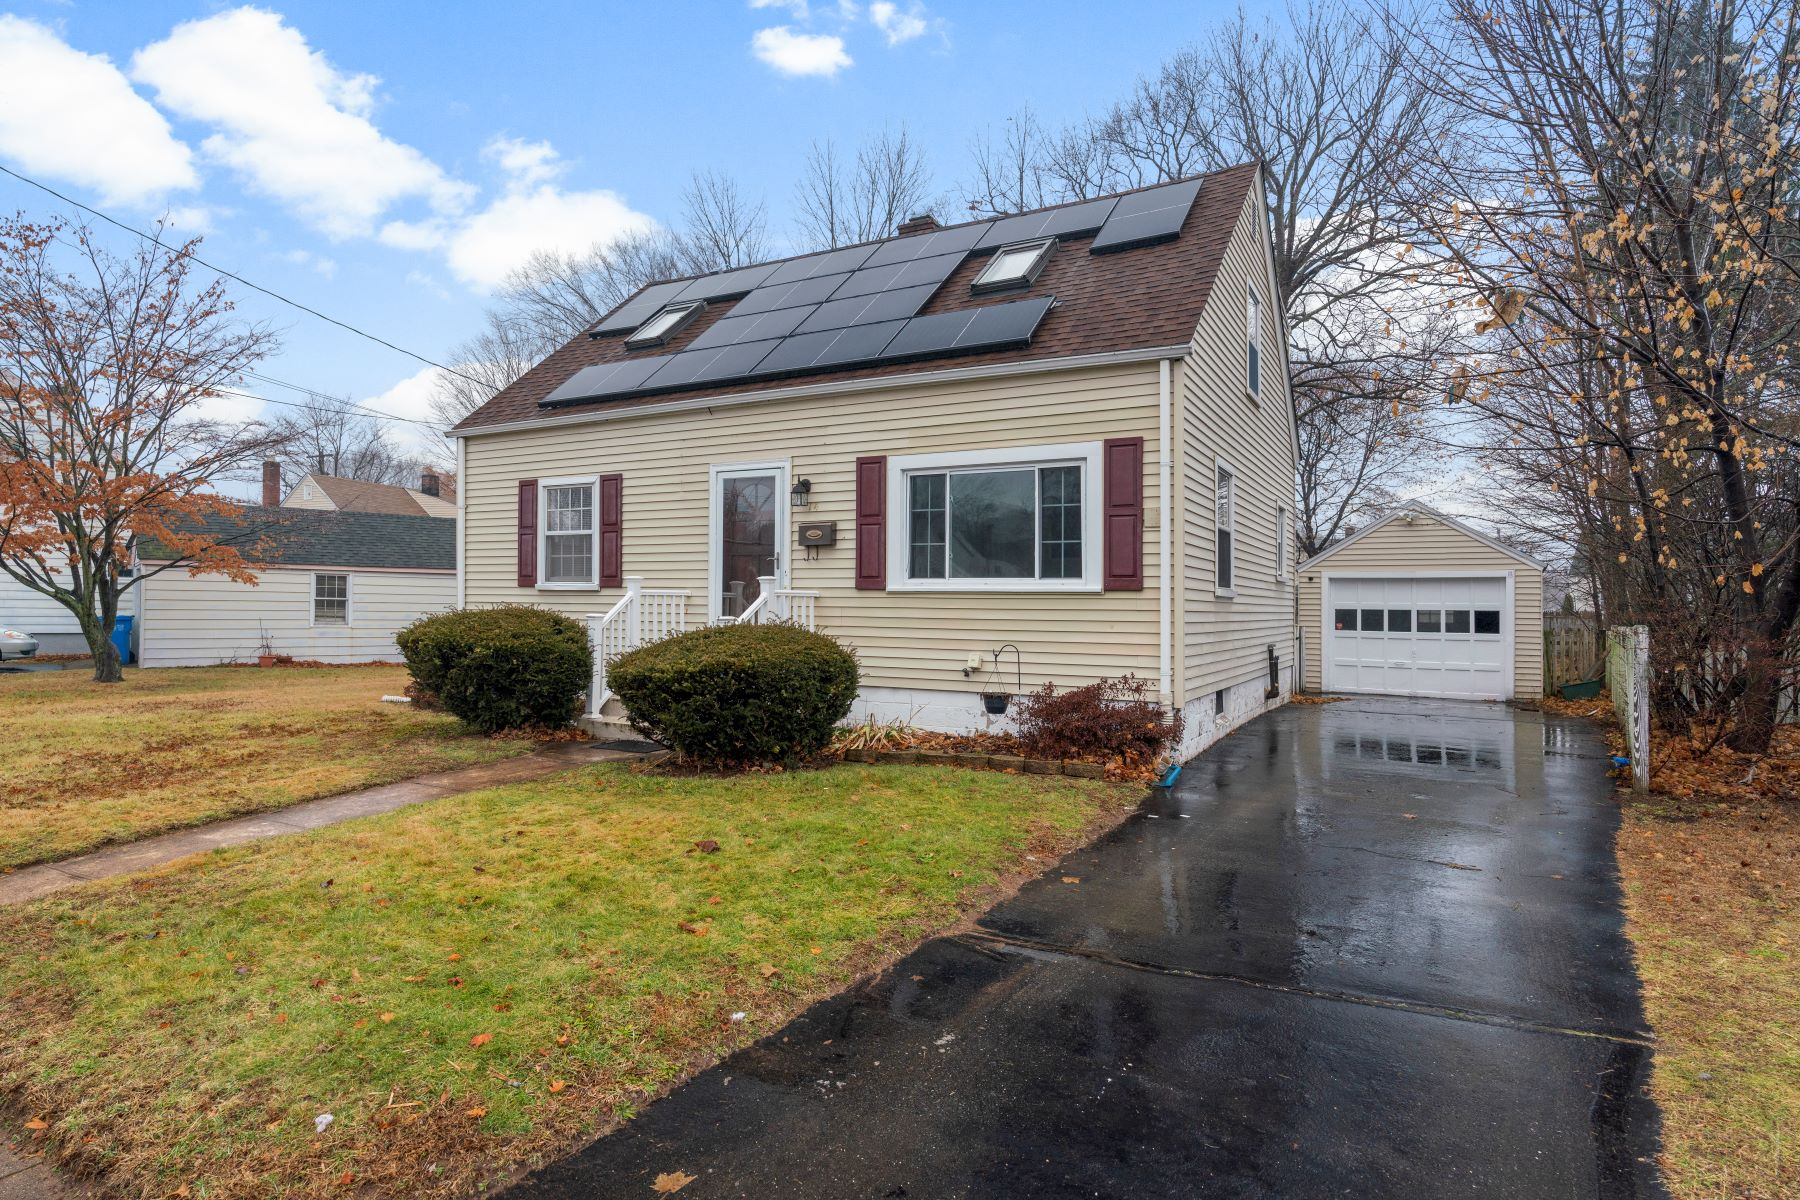 Single Family Homes for Sale at 14 Rockwood Road 14 Rockwood Rd Hamden, Connecticut 06514 United States